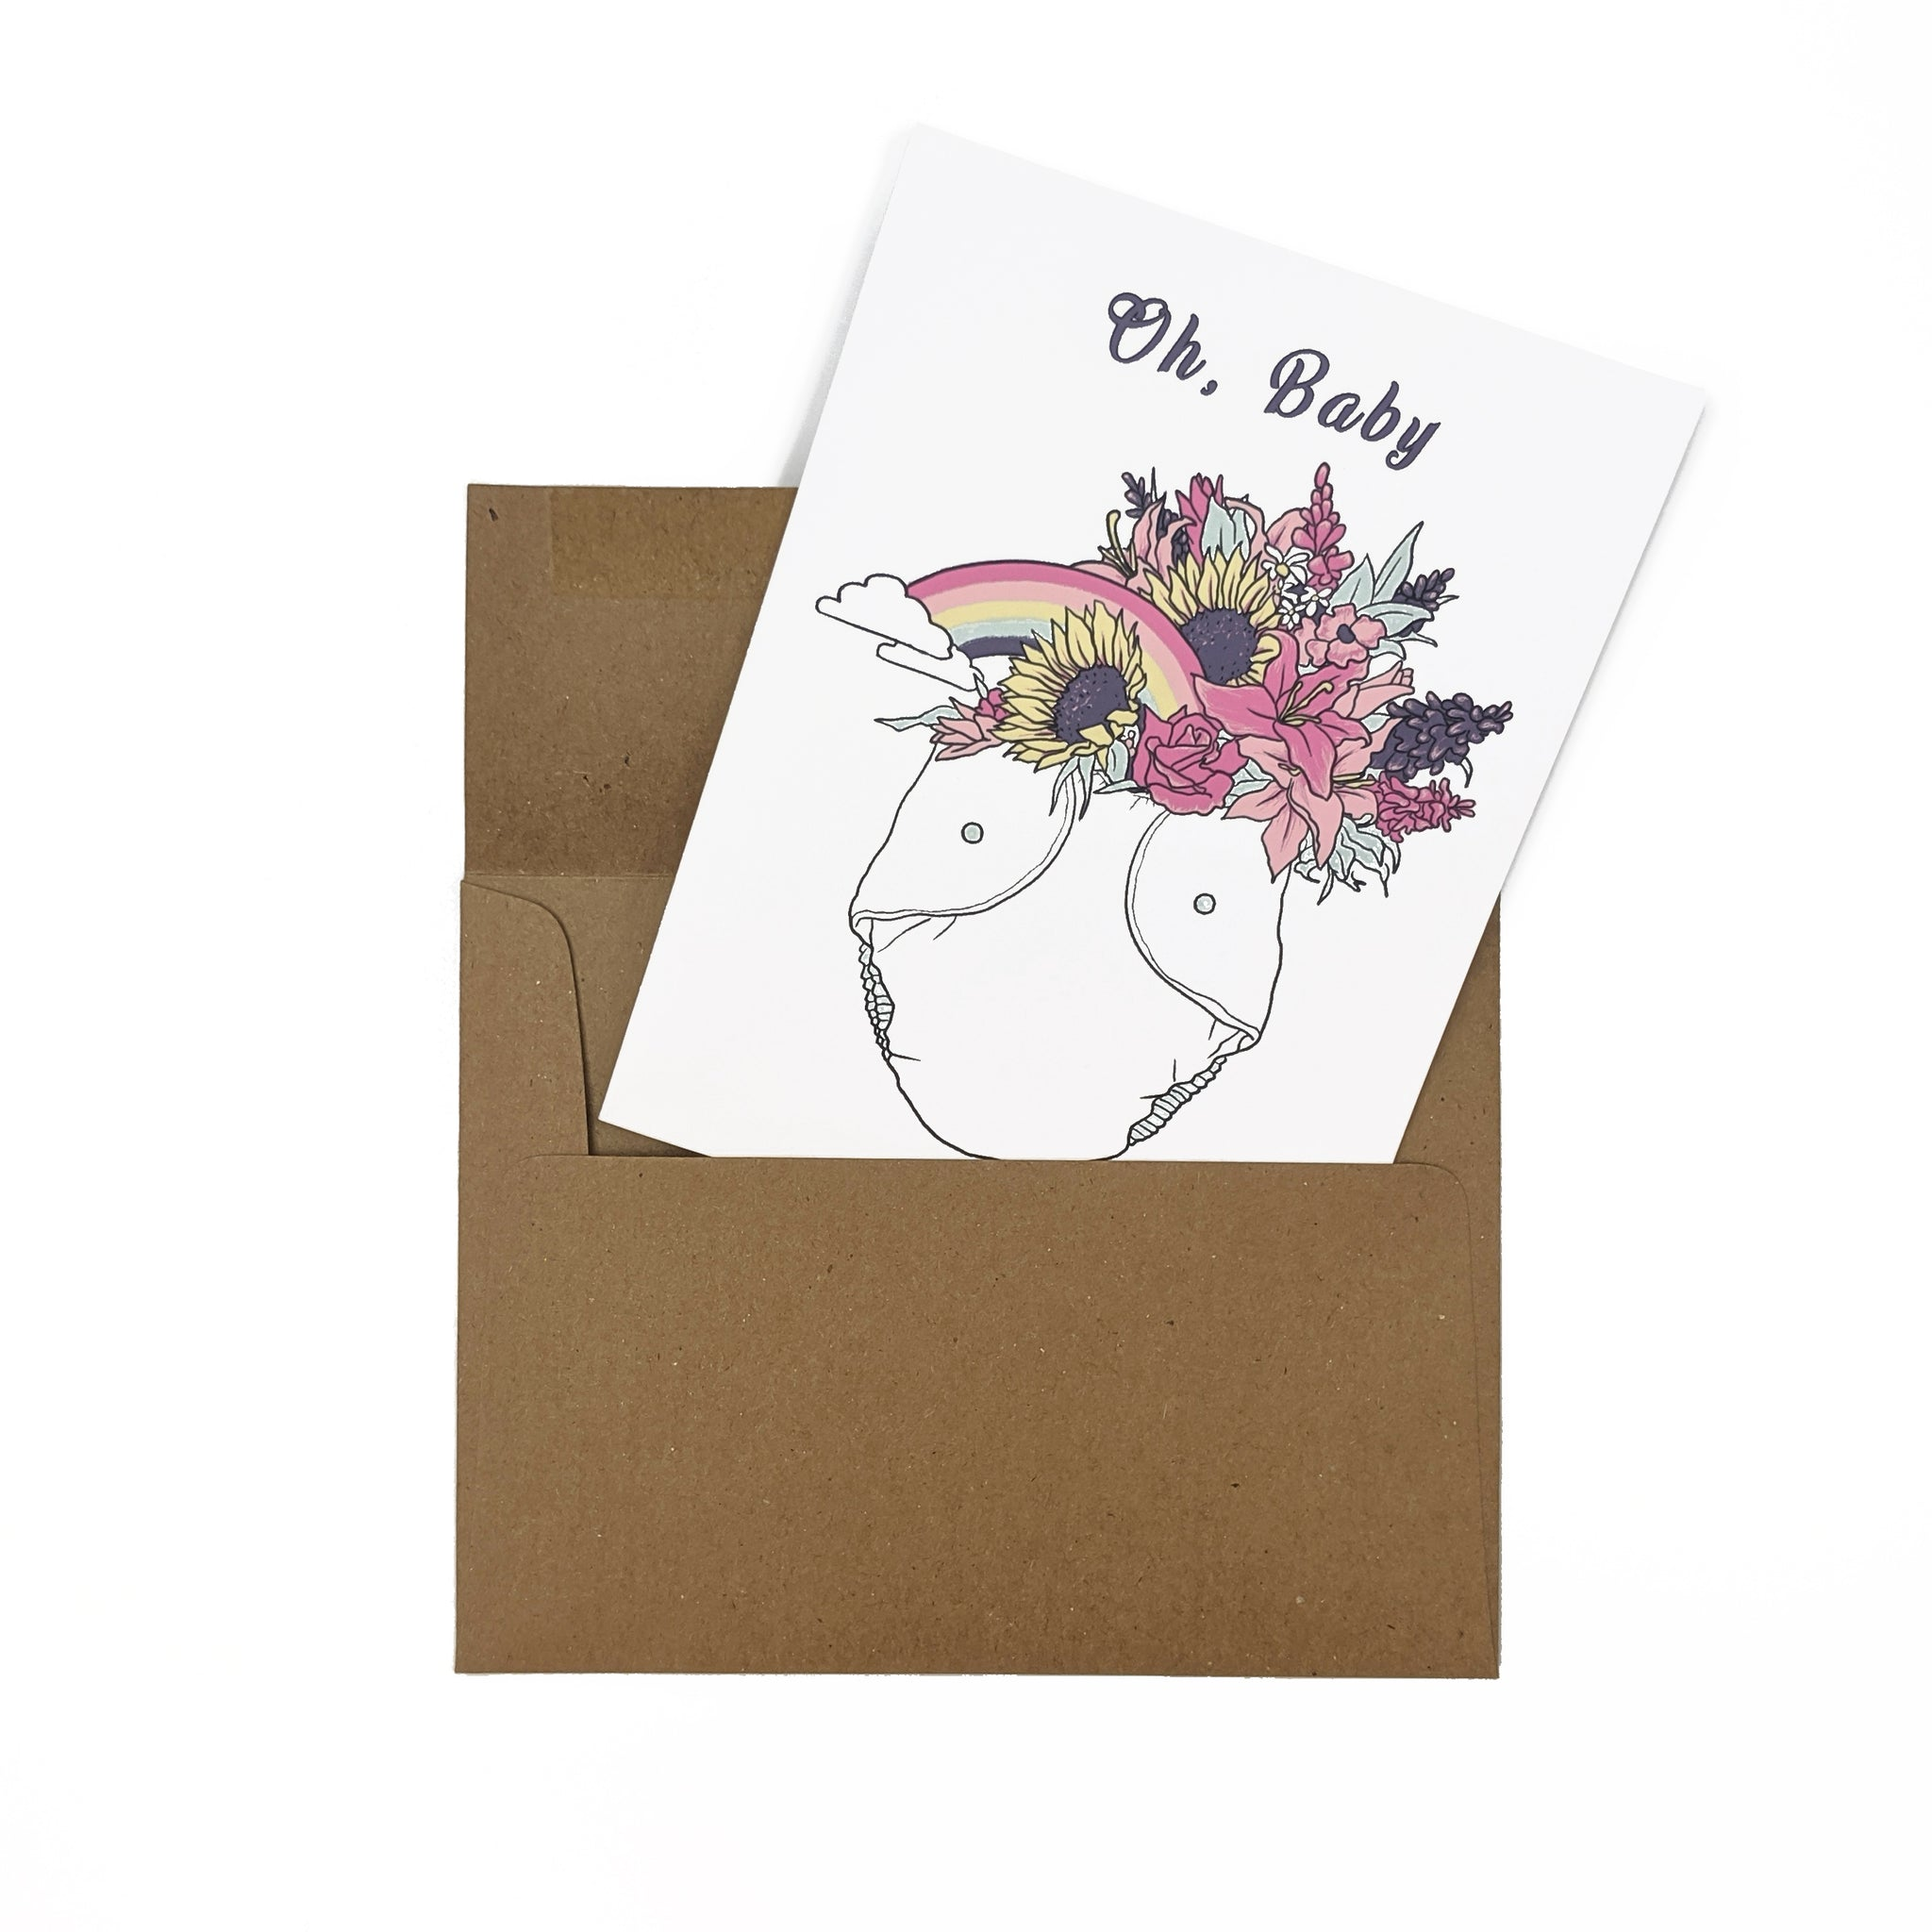 Oh, Baby - Greeting Card